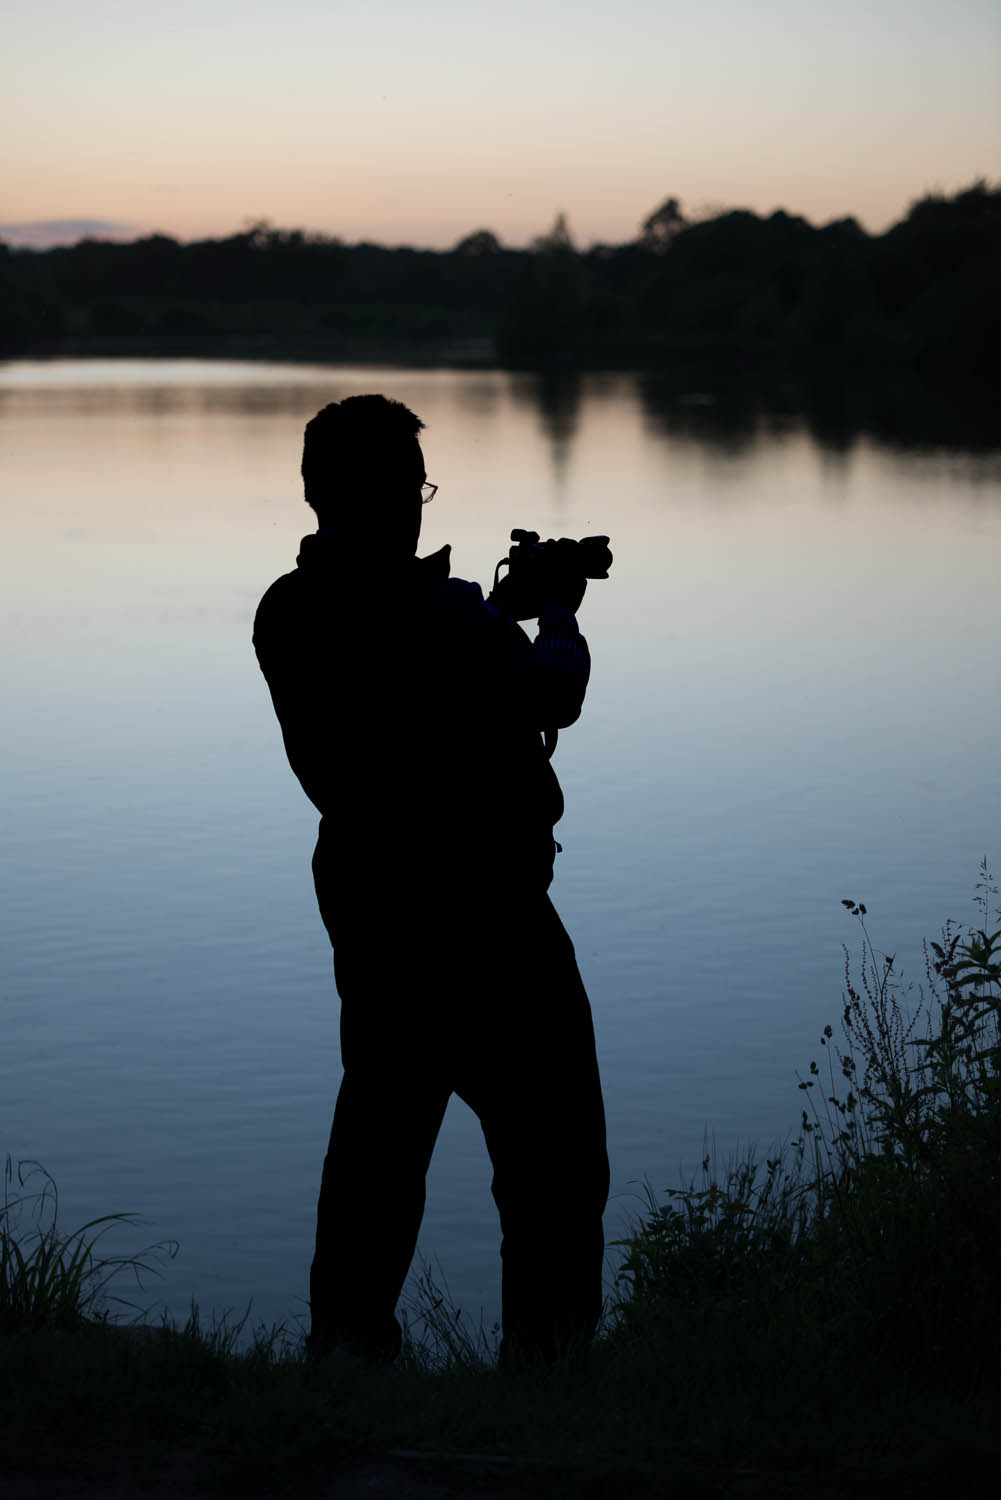 The Photographers Silhouette